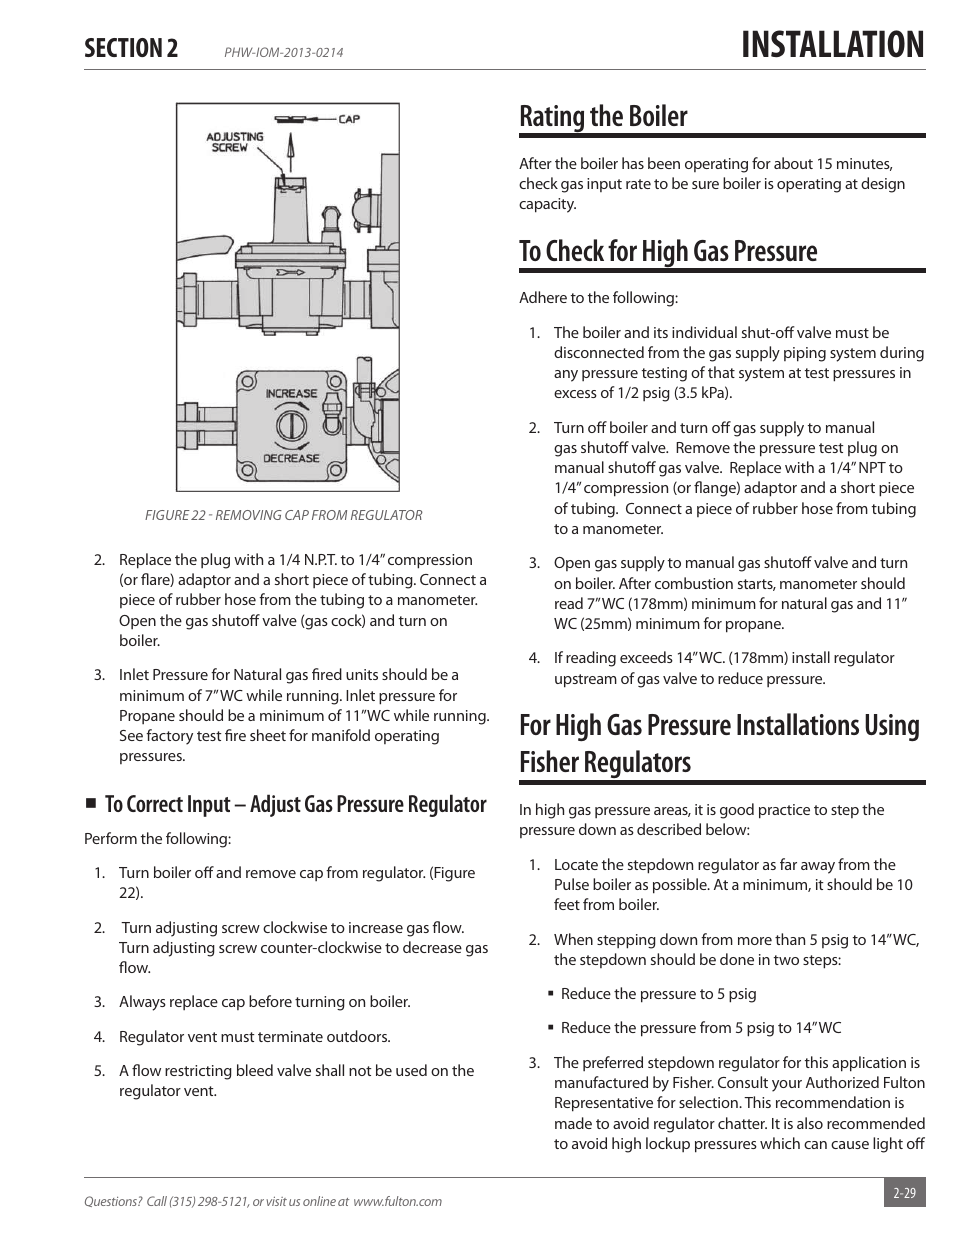 Famous Boiler Manual Image Collection - Electrical and Wiring ...